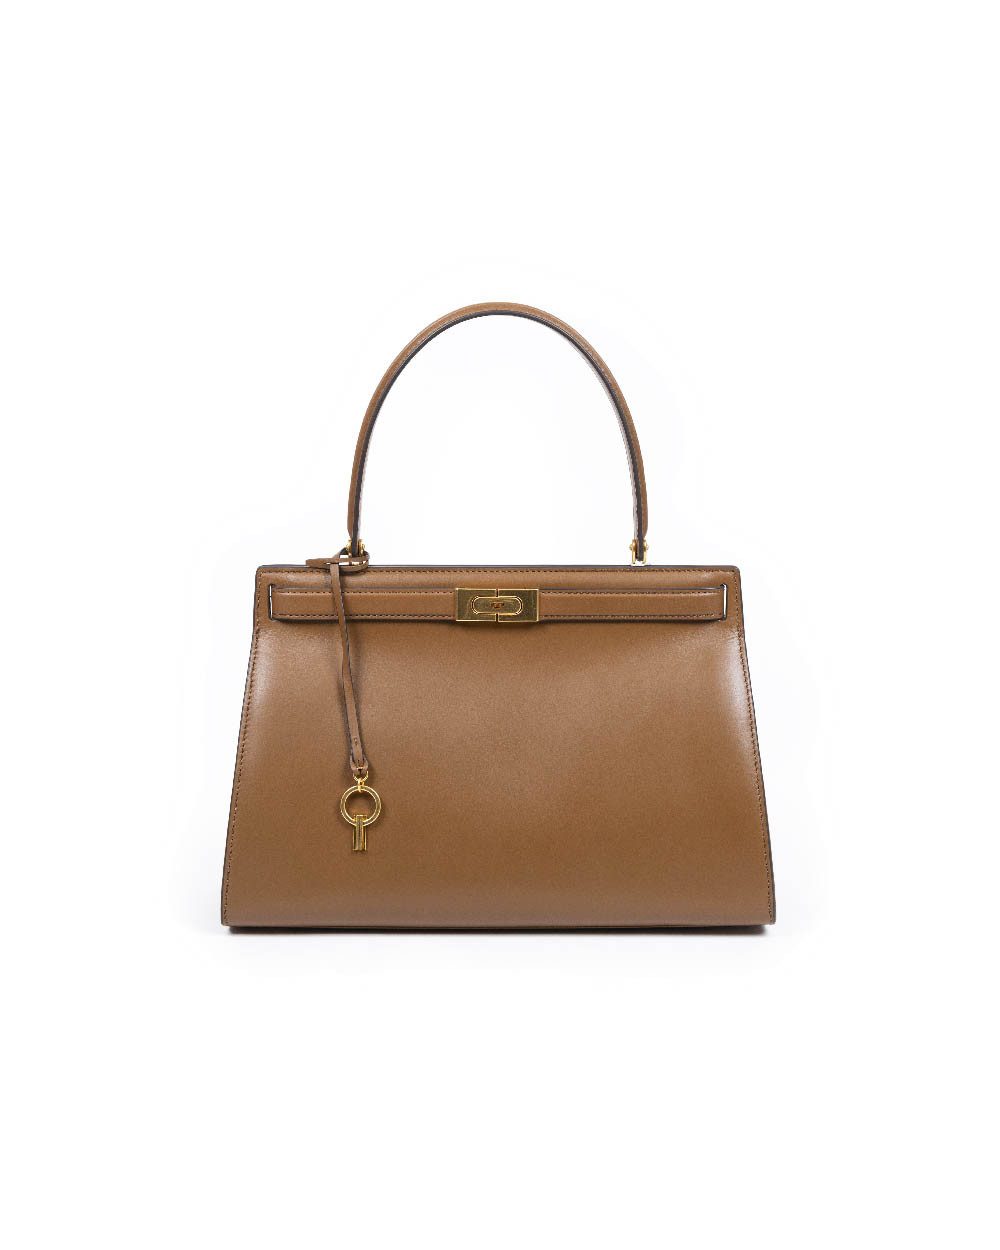 "Sac Tory Burch ""Lee Radziwil"" cognac"